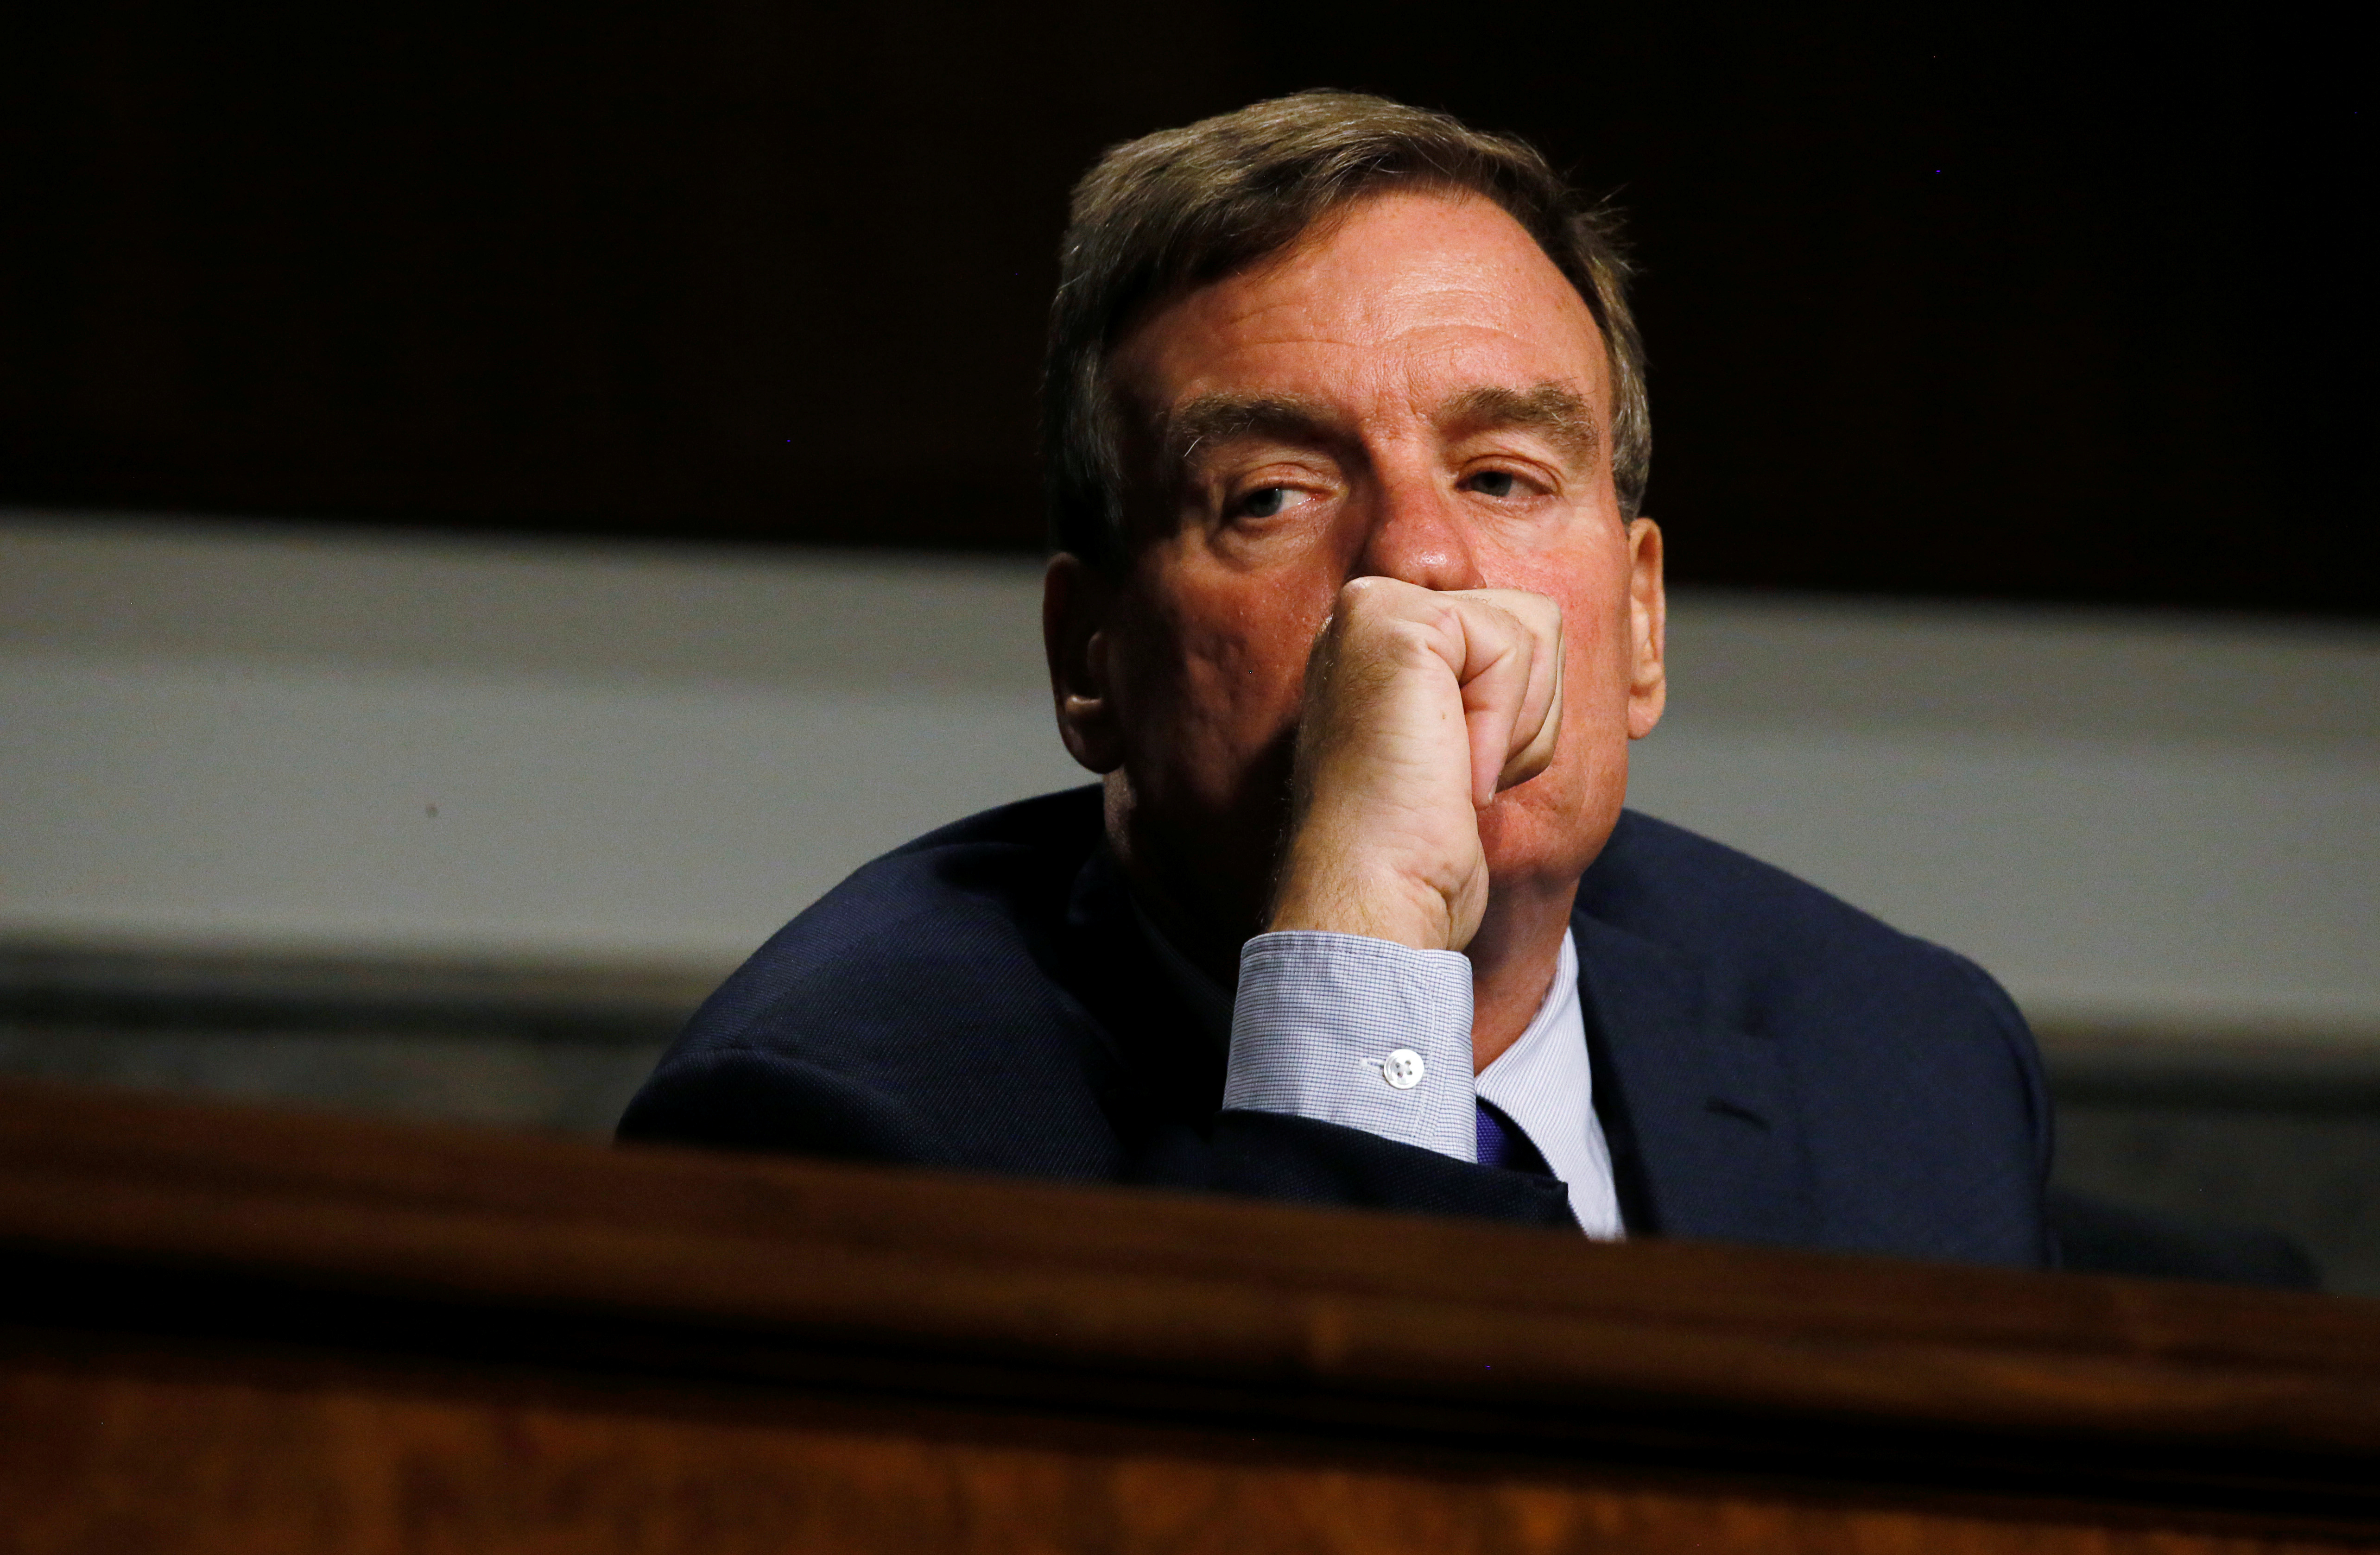 FILE PHOTO: Senate Intelligence Committee Vice Chairman Senator Mark Warner listens to testimony from Twitter CEO Jack Dorsey and Facebook COO Sheryl Sandberg at a hearing on foreign influence operations on social media platforms on Capitol Hill in Washington, U.S., September 5, 2018. REUTERS/Jim Bourg